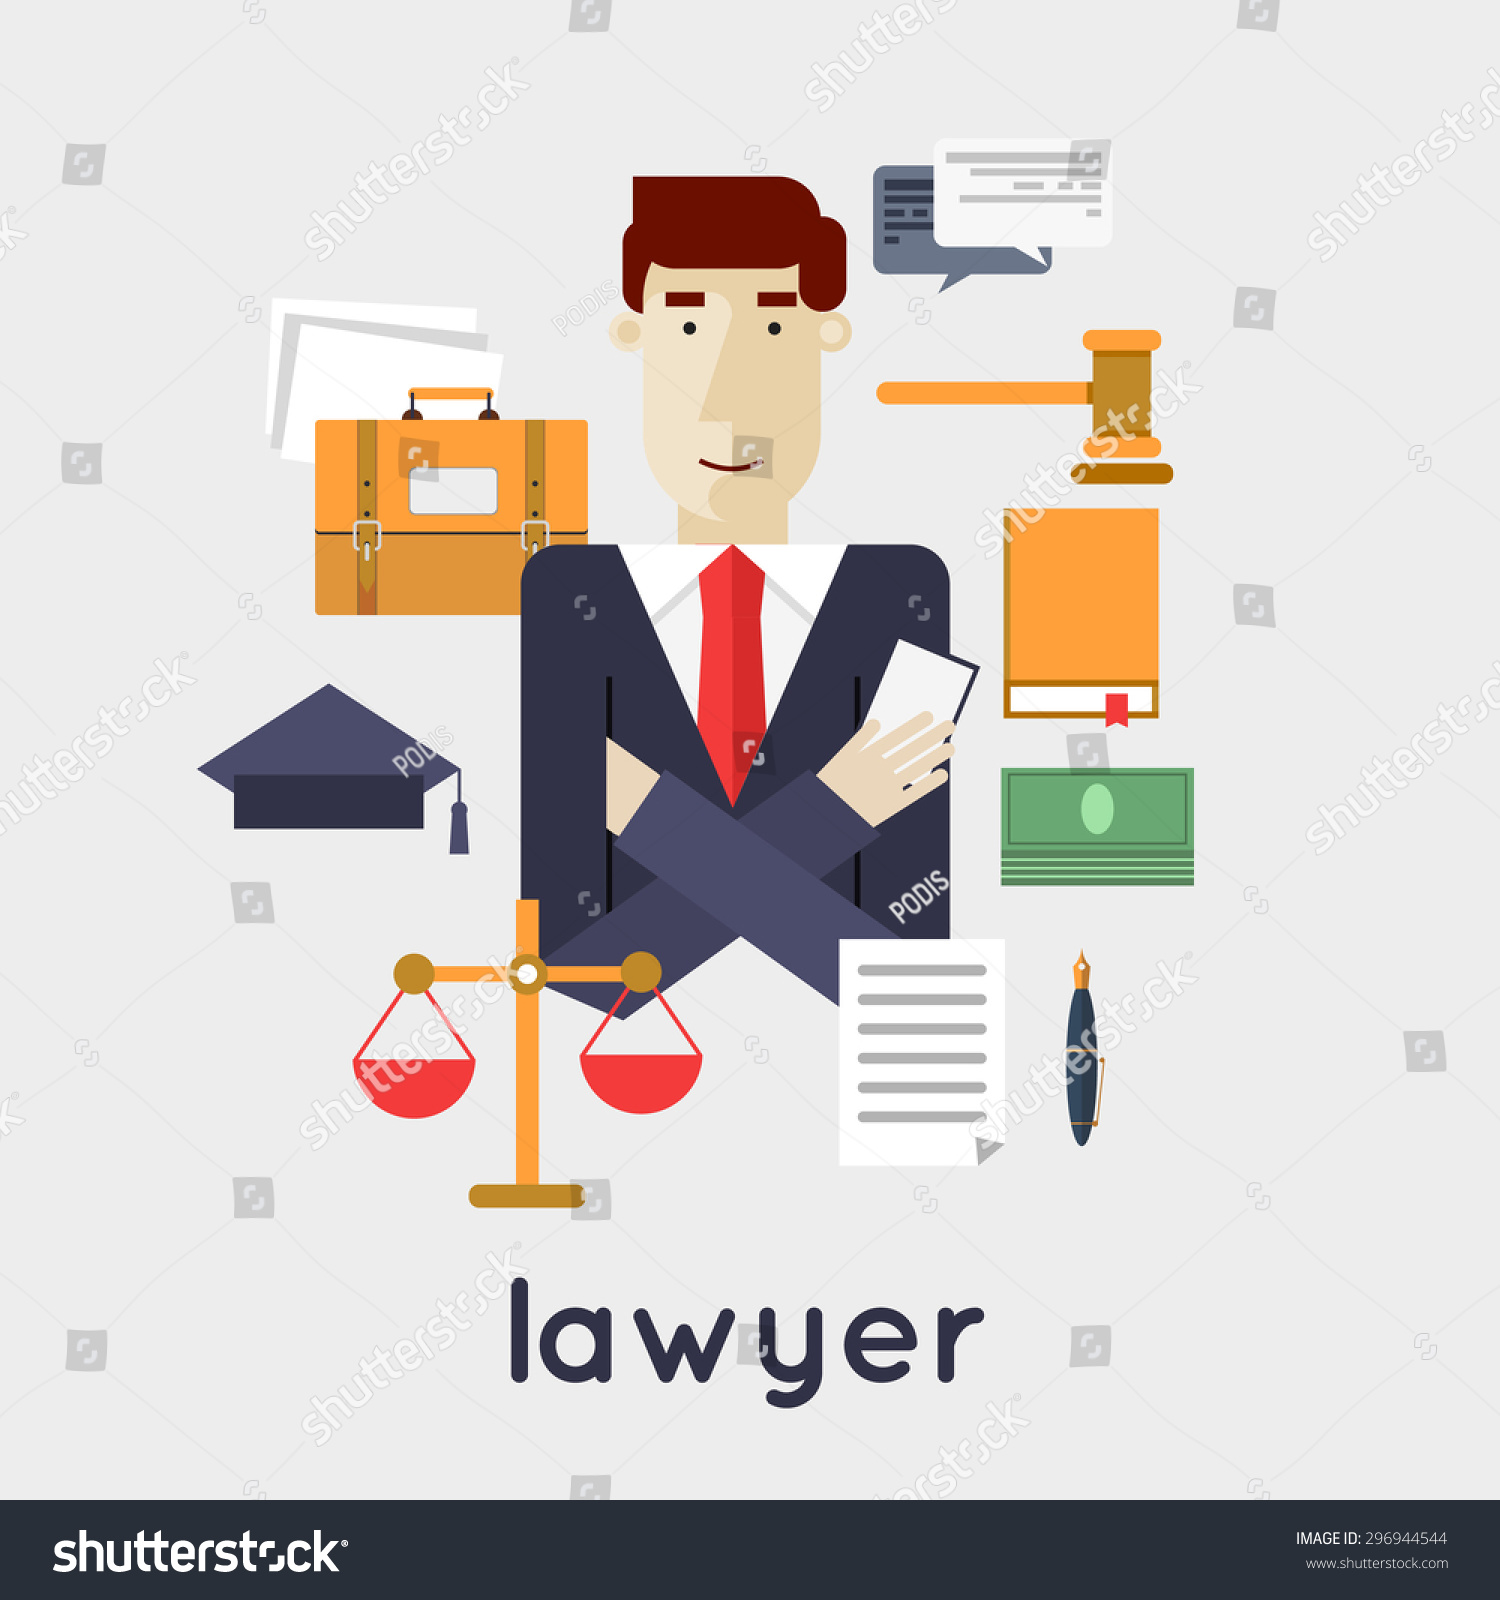 lawyer vector - photo #10